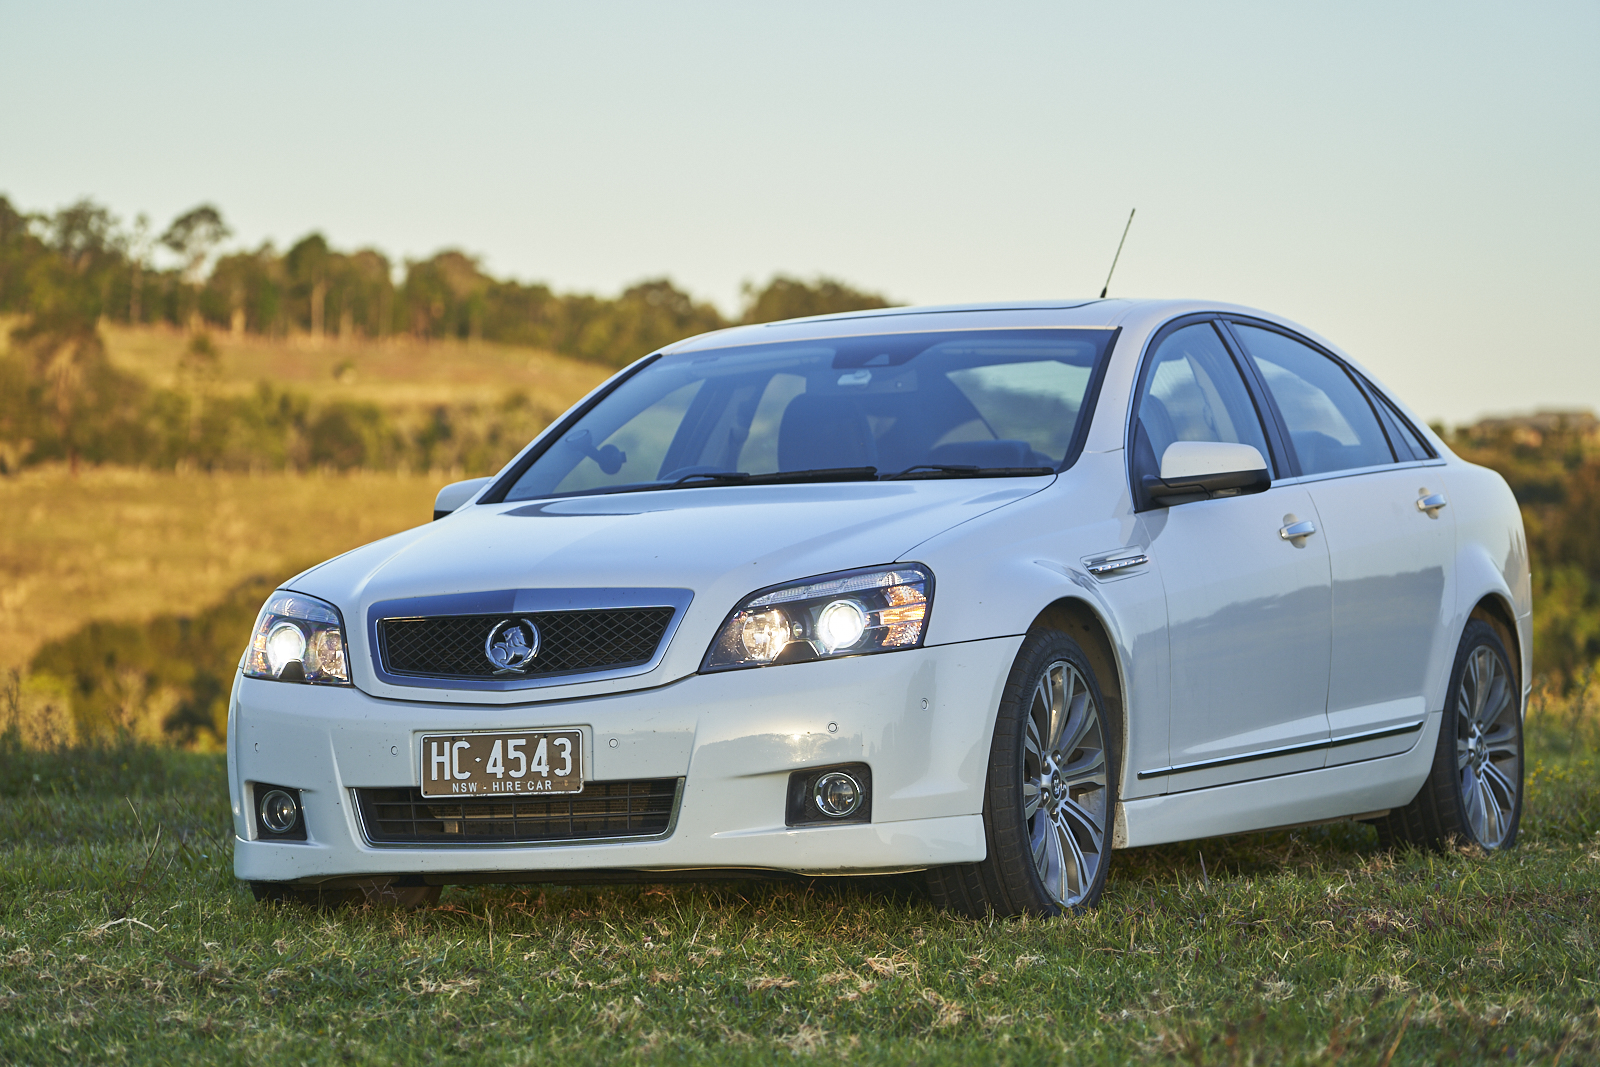 Holden Caprice V8 Sedan  / Gold Coast QLD, Australia   / Hourly (Wedding) AUD$ 150.00  / Hourly (Other services) AUD$ 150.00  / Airport Transfer AUD$ 220.00